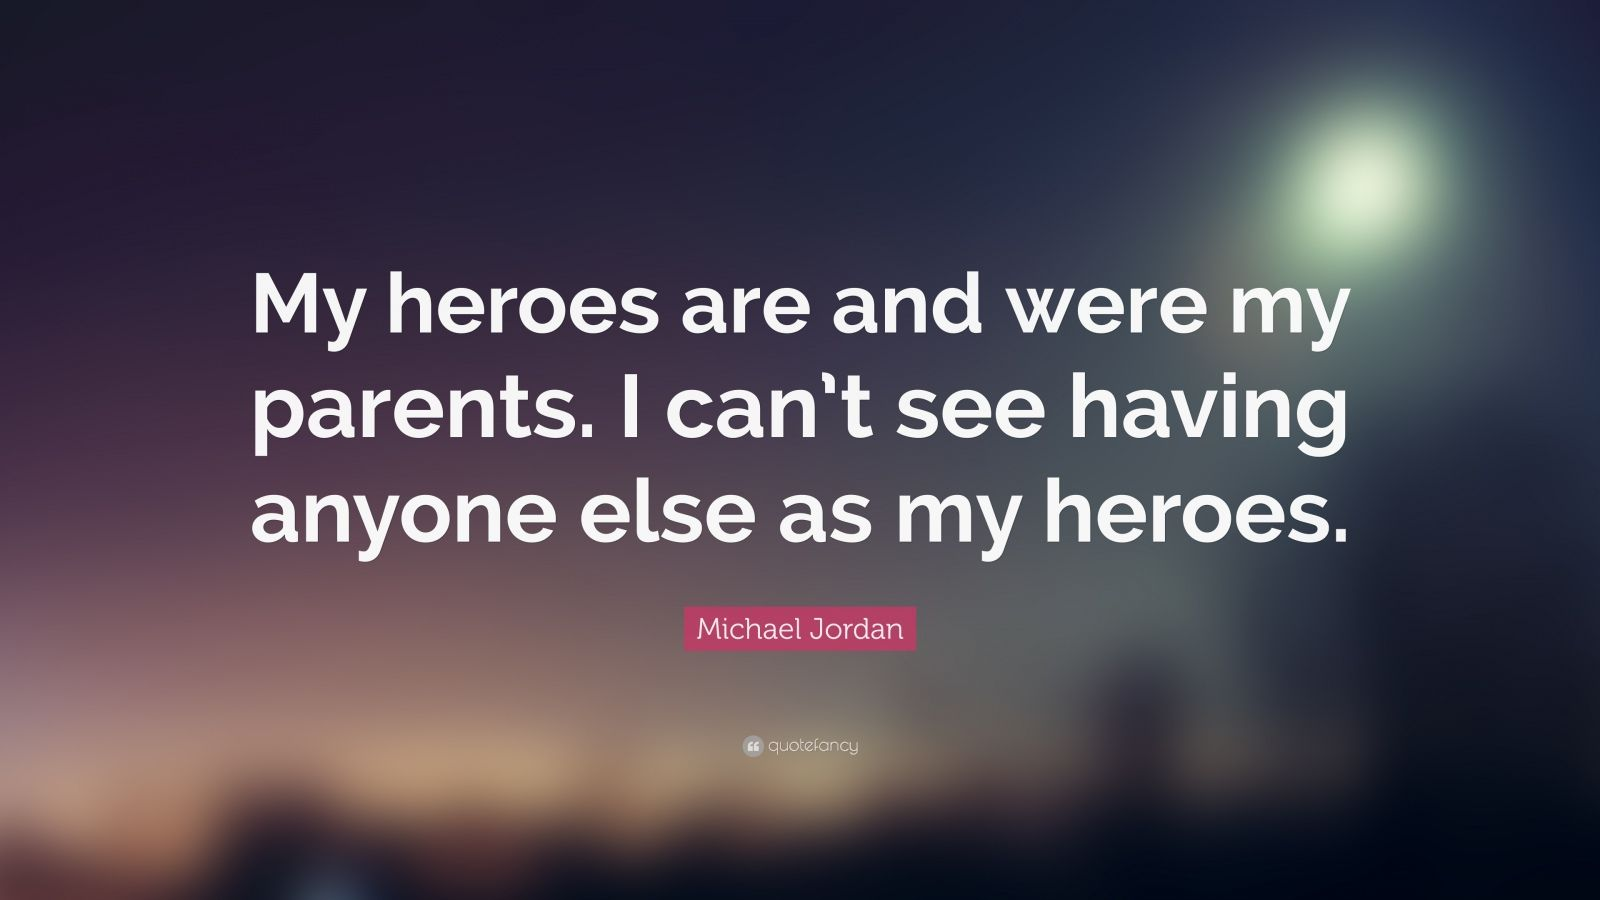 essays on parents being heroes Of course, we created not a free essay generator, but we are close to being one of the best help a student can get studentshare is an excellent platform for you to get inspired, perform a quick research on the trickiest topic, gain experience and understanding of what is an essay and how it should be written.